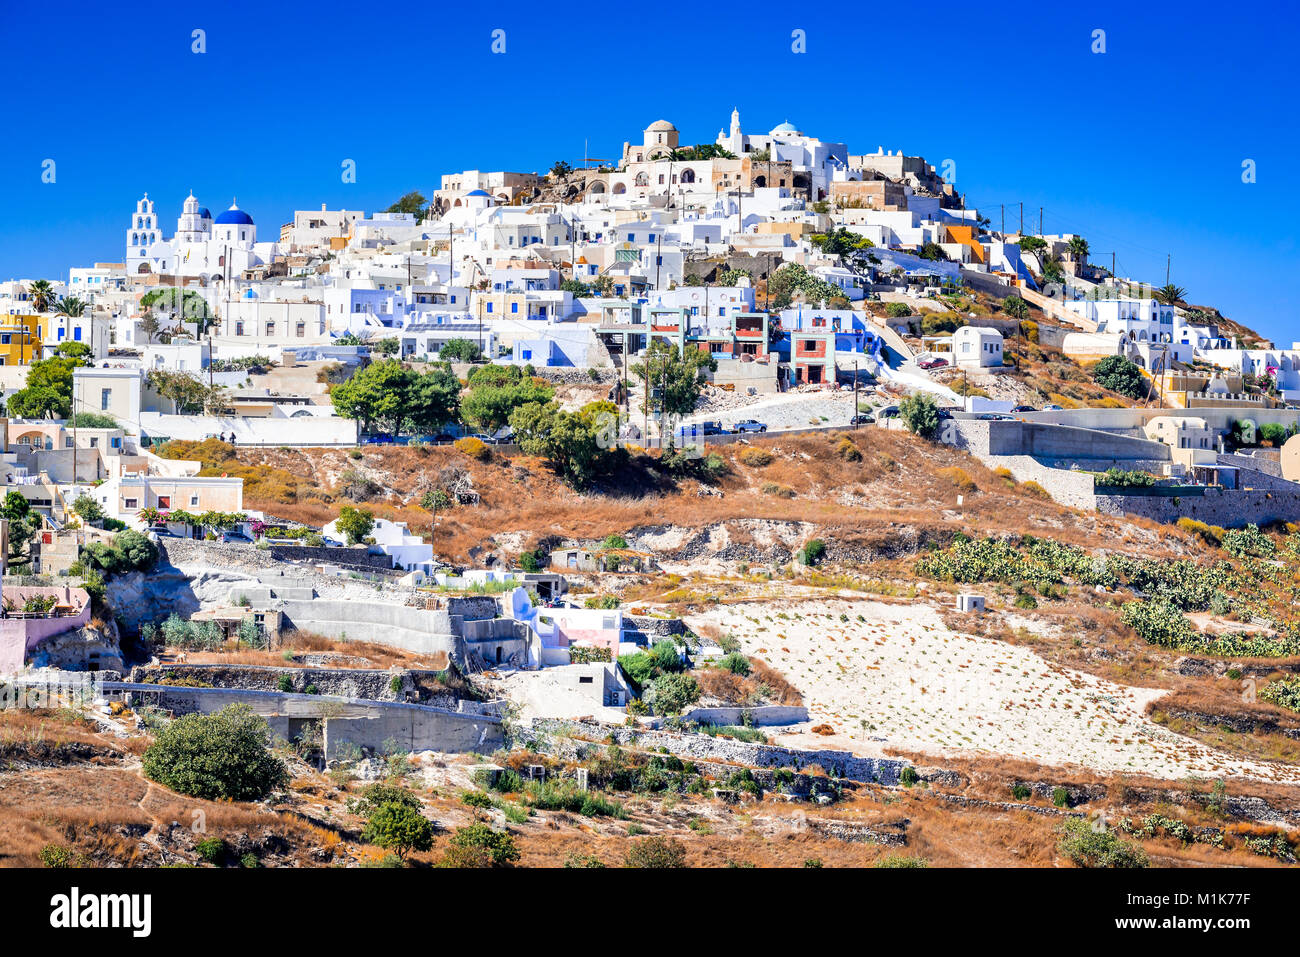 Pyrgos, Santorin. Célèbre attraction de village blanc avec des rues pavées, Îles Cyclades grecques, Photo Stock